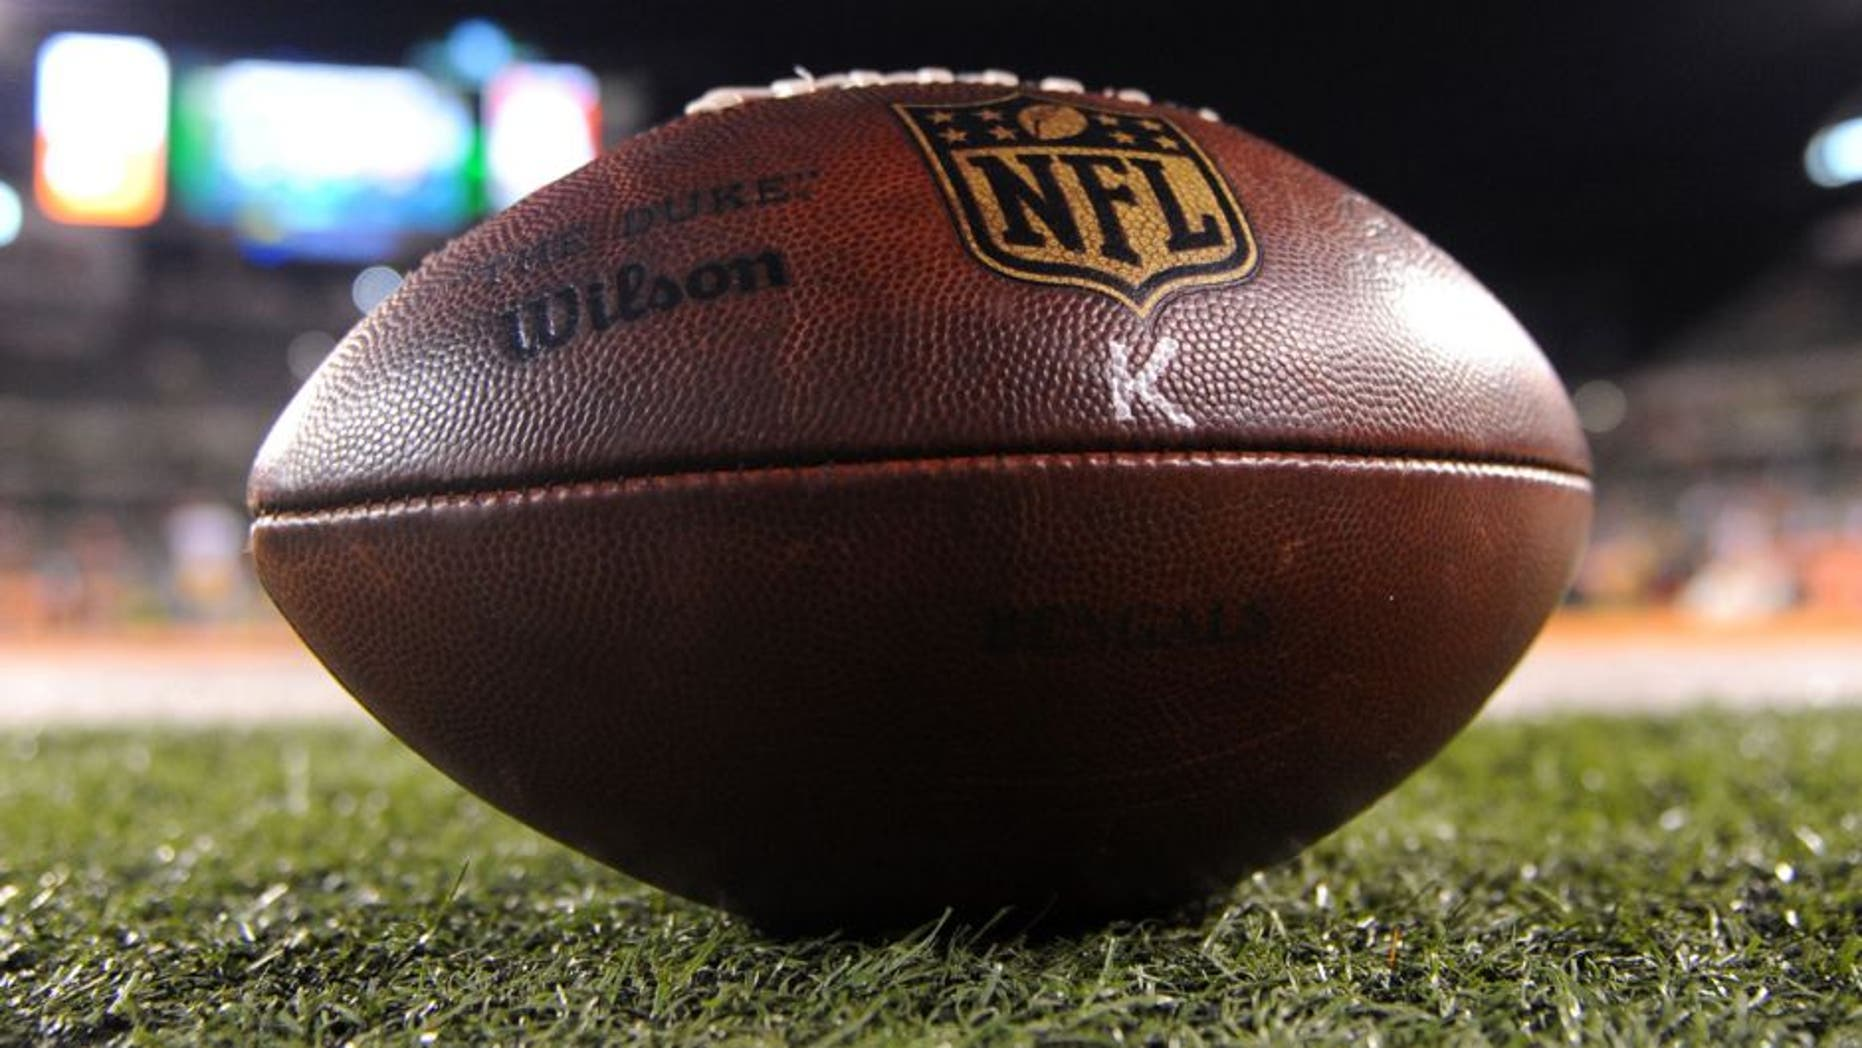 Jan 9, 2016; Cincinnati, OH, USA; A detail view of a football before the AFC Wild Card playoff football game between the Cincinnati Bengals and the Pittsburgh Steelers at Paul Brown Stadium. Mandatory Credit: Christopher Hanewinckel-USA TODAY Sports